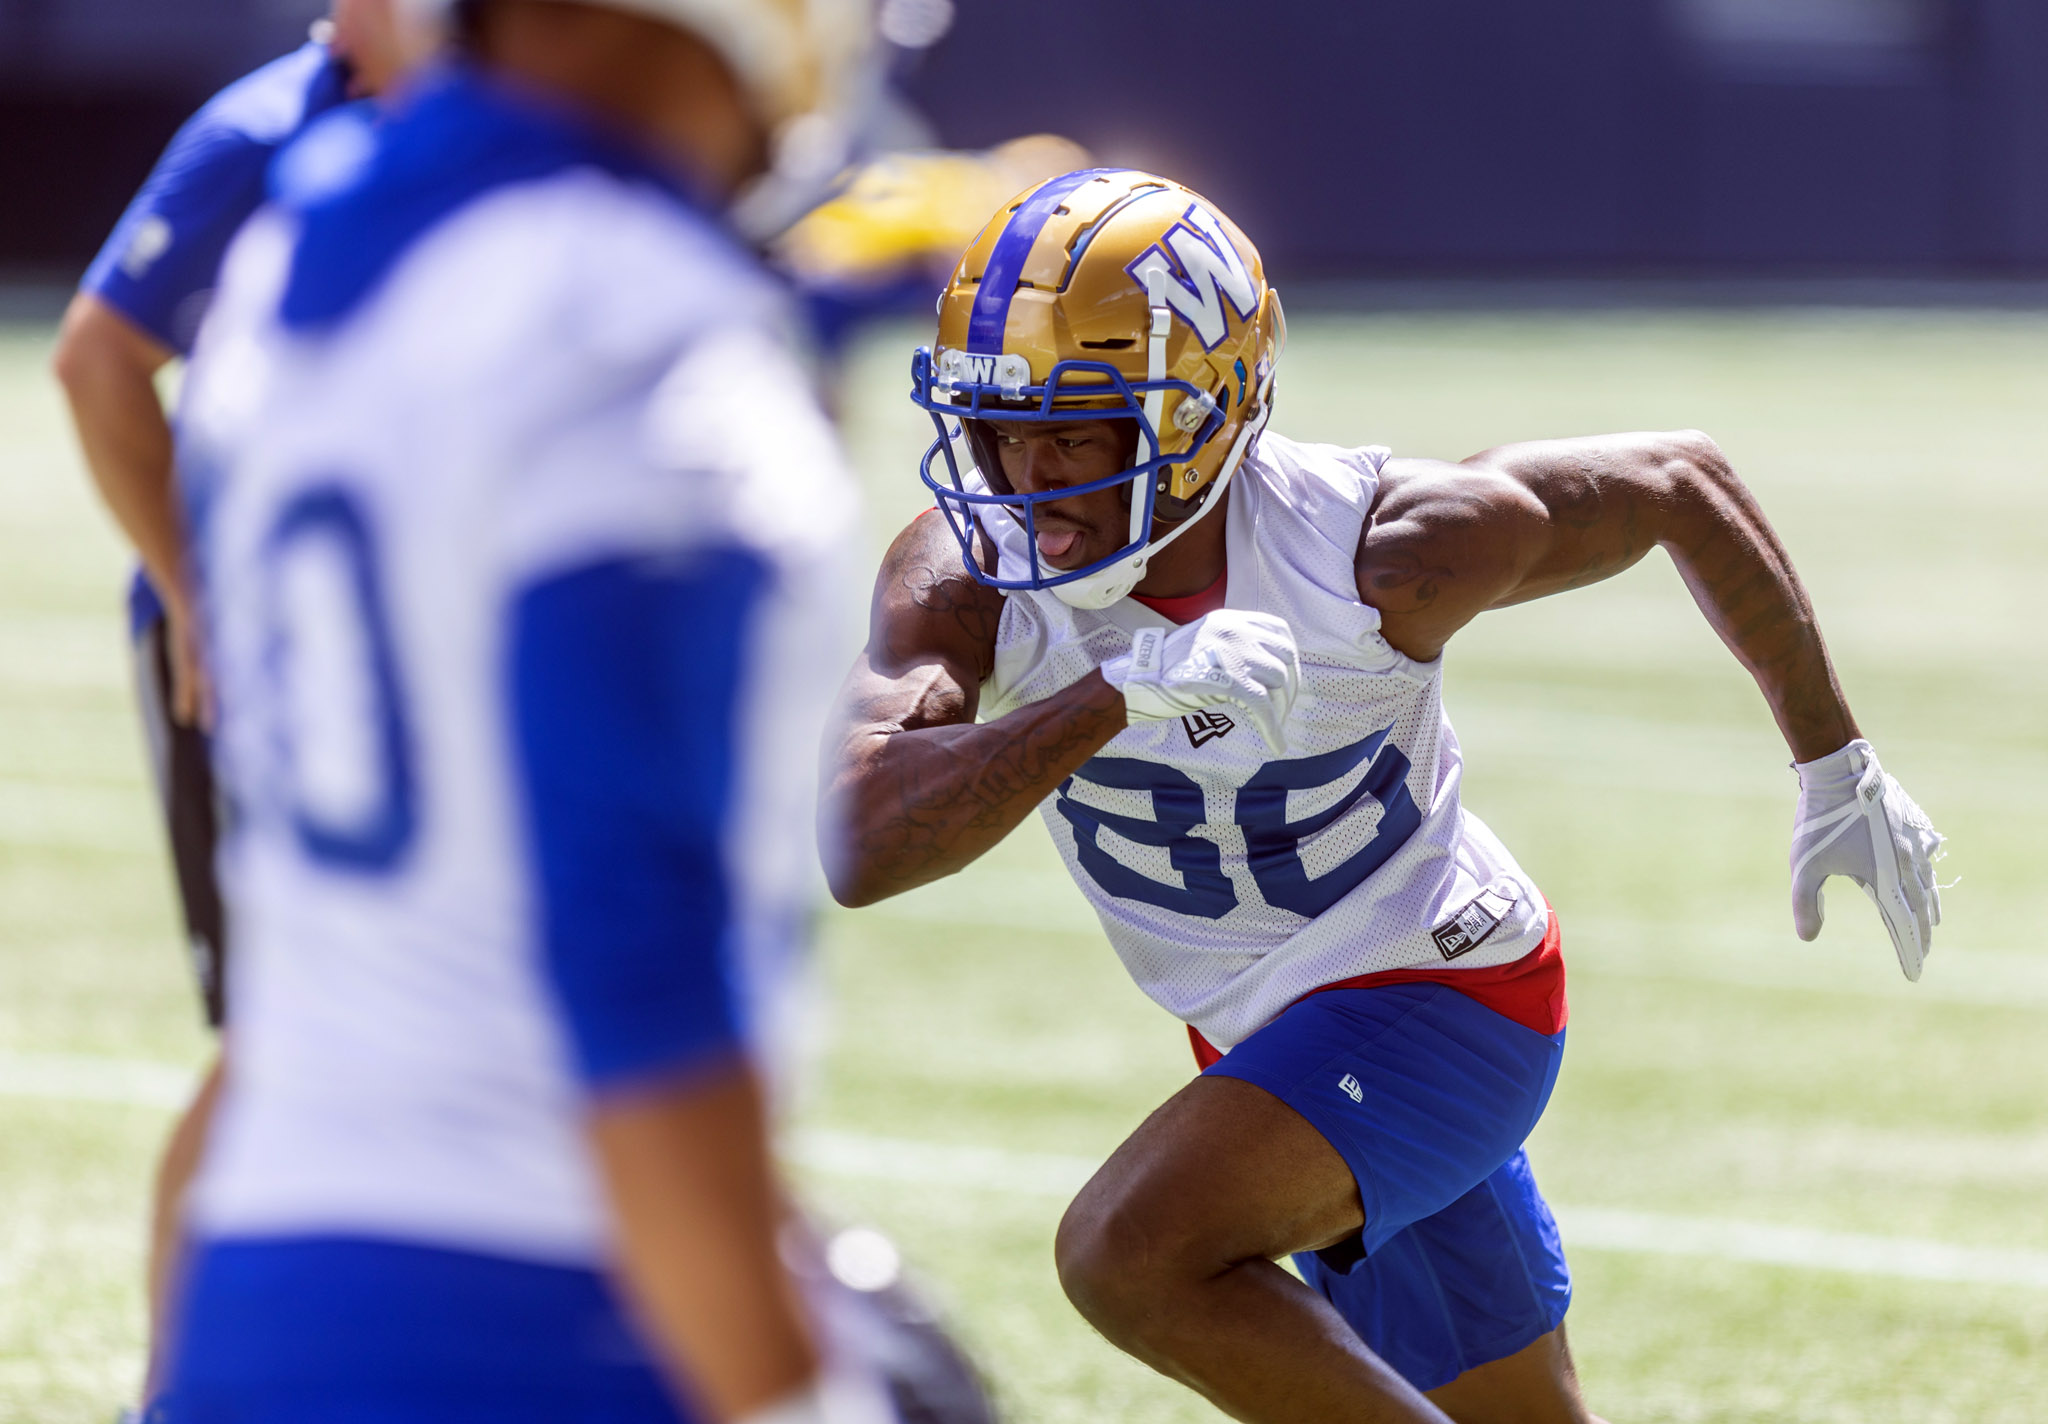 Kenneth Walker III takes part in drills during a practice at IG Field on Tuesday. (Sasha Sefter / Winnipeg Free Press)